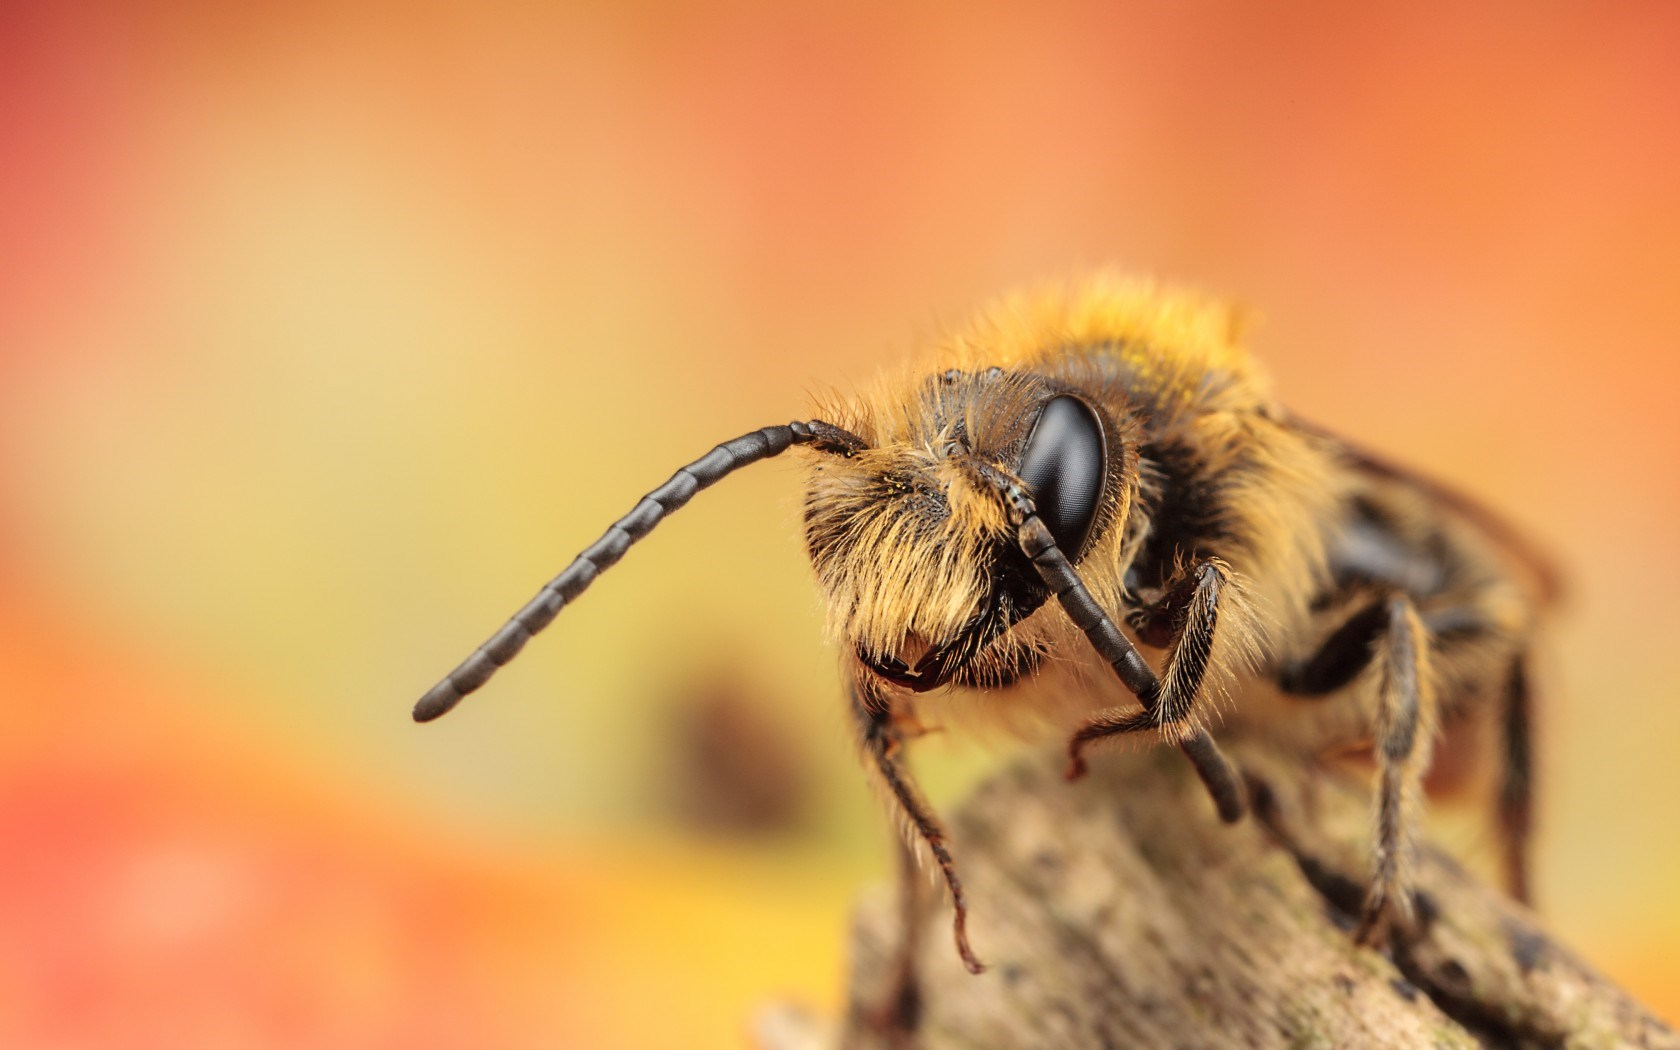 Bee Wallpapers HD Pictures One HD Wallpaper Pictures 1680x1050